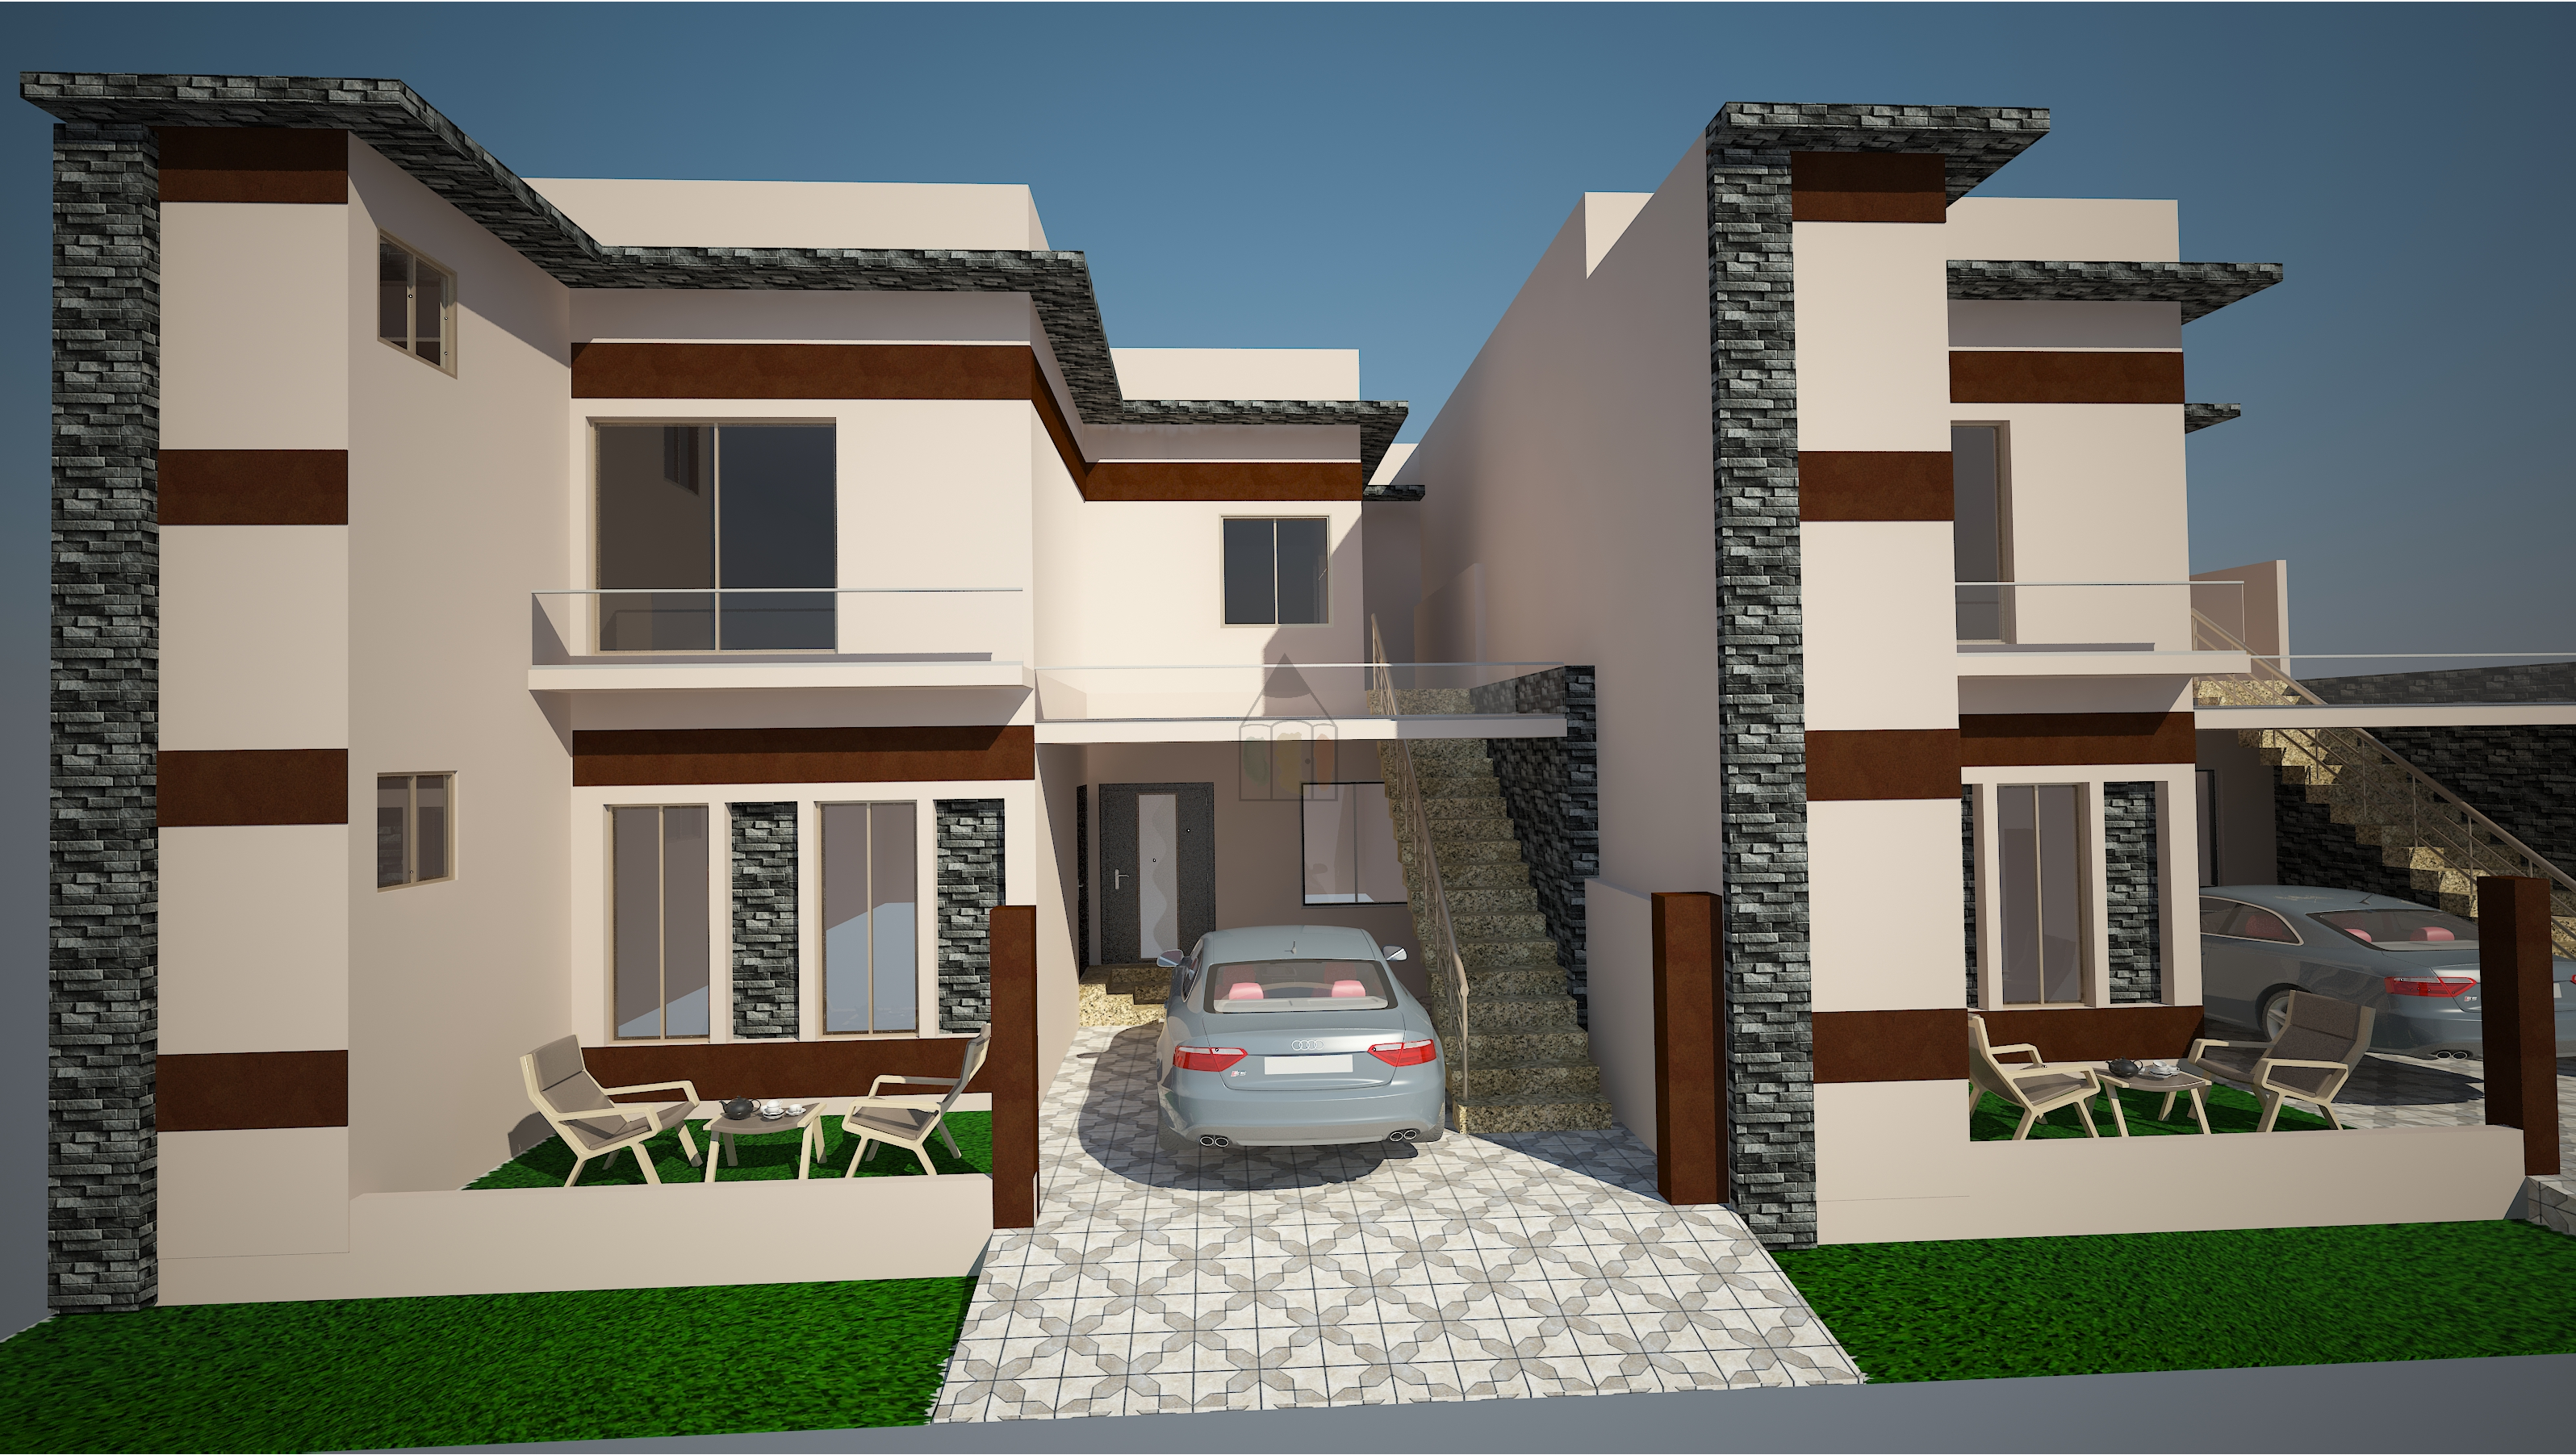 7 Marla House Design Model Has 1 Bedroom With Attached